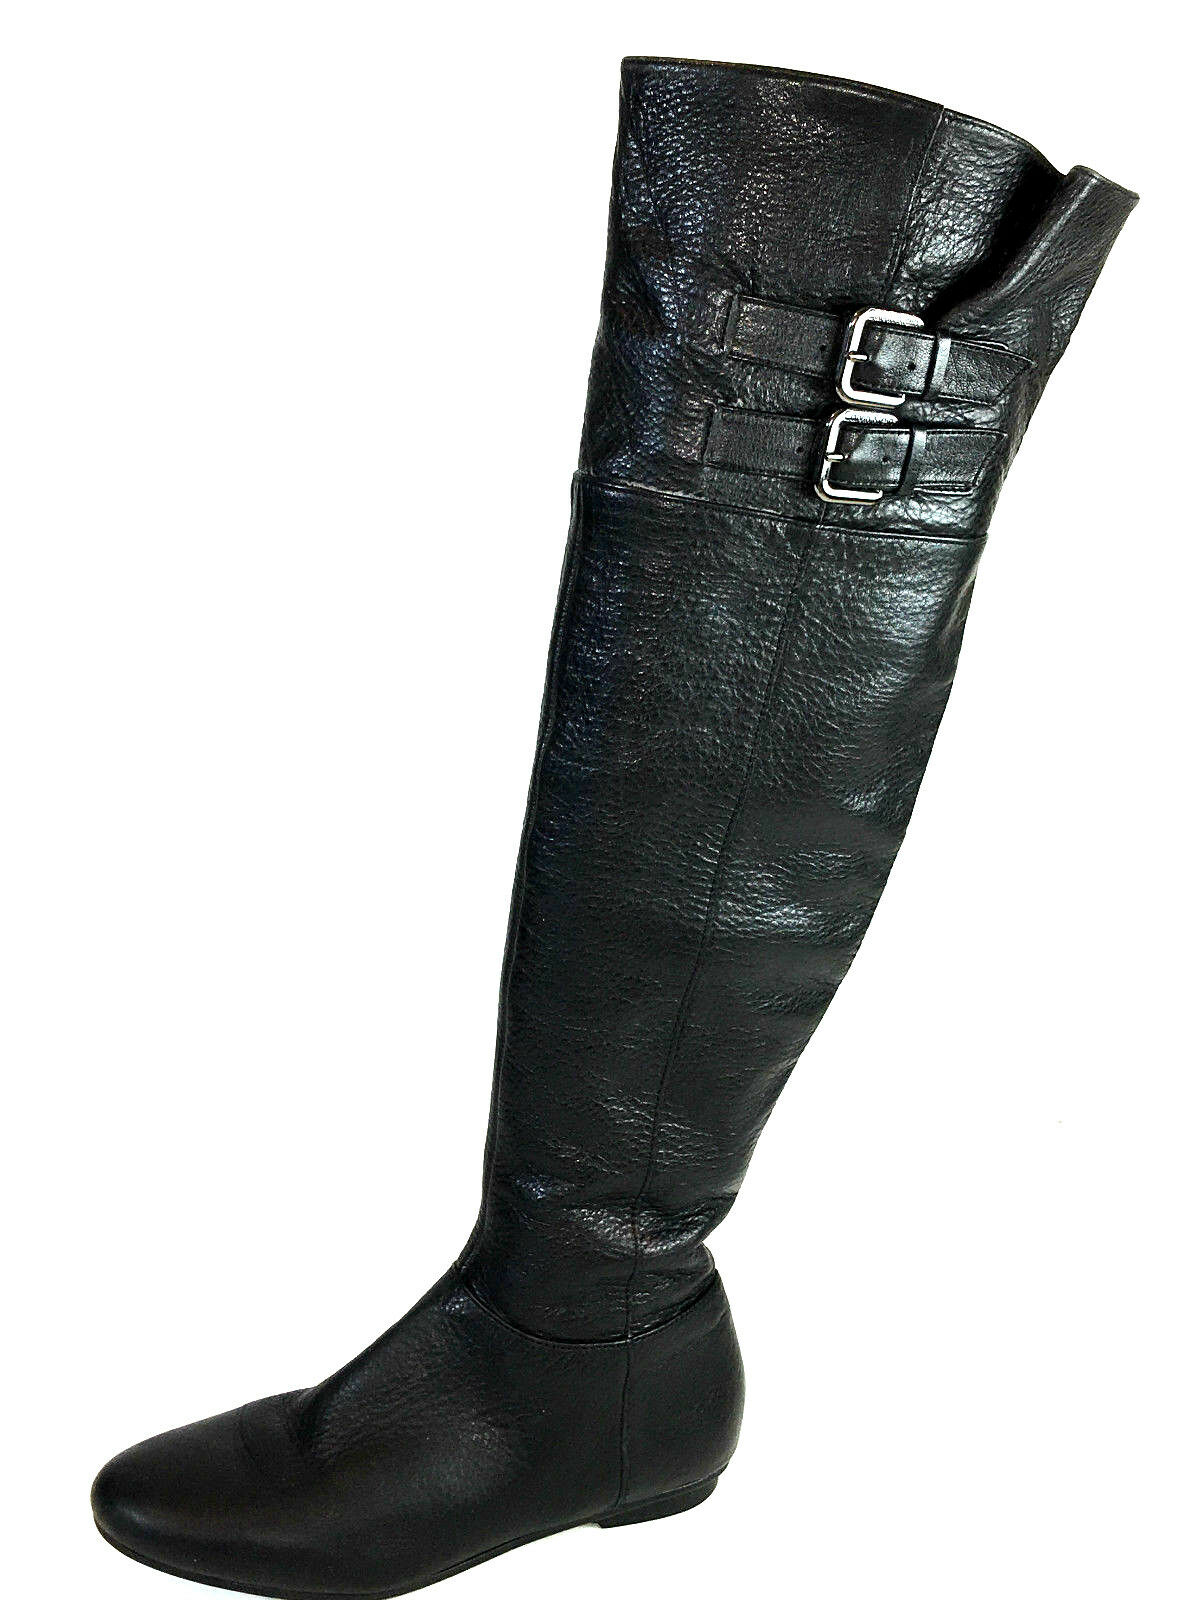 Calvin Klein Michelle Adjustable Buckle, Over the Knee Black Boots Size Size Boots 6.5 Usa. 28f199